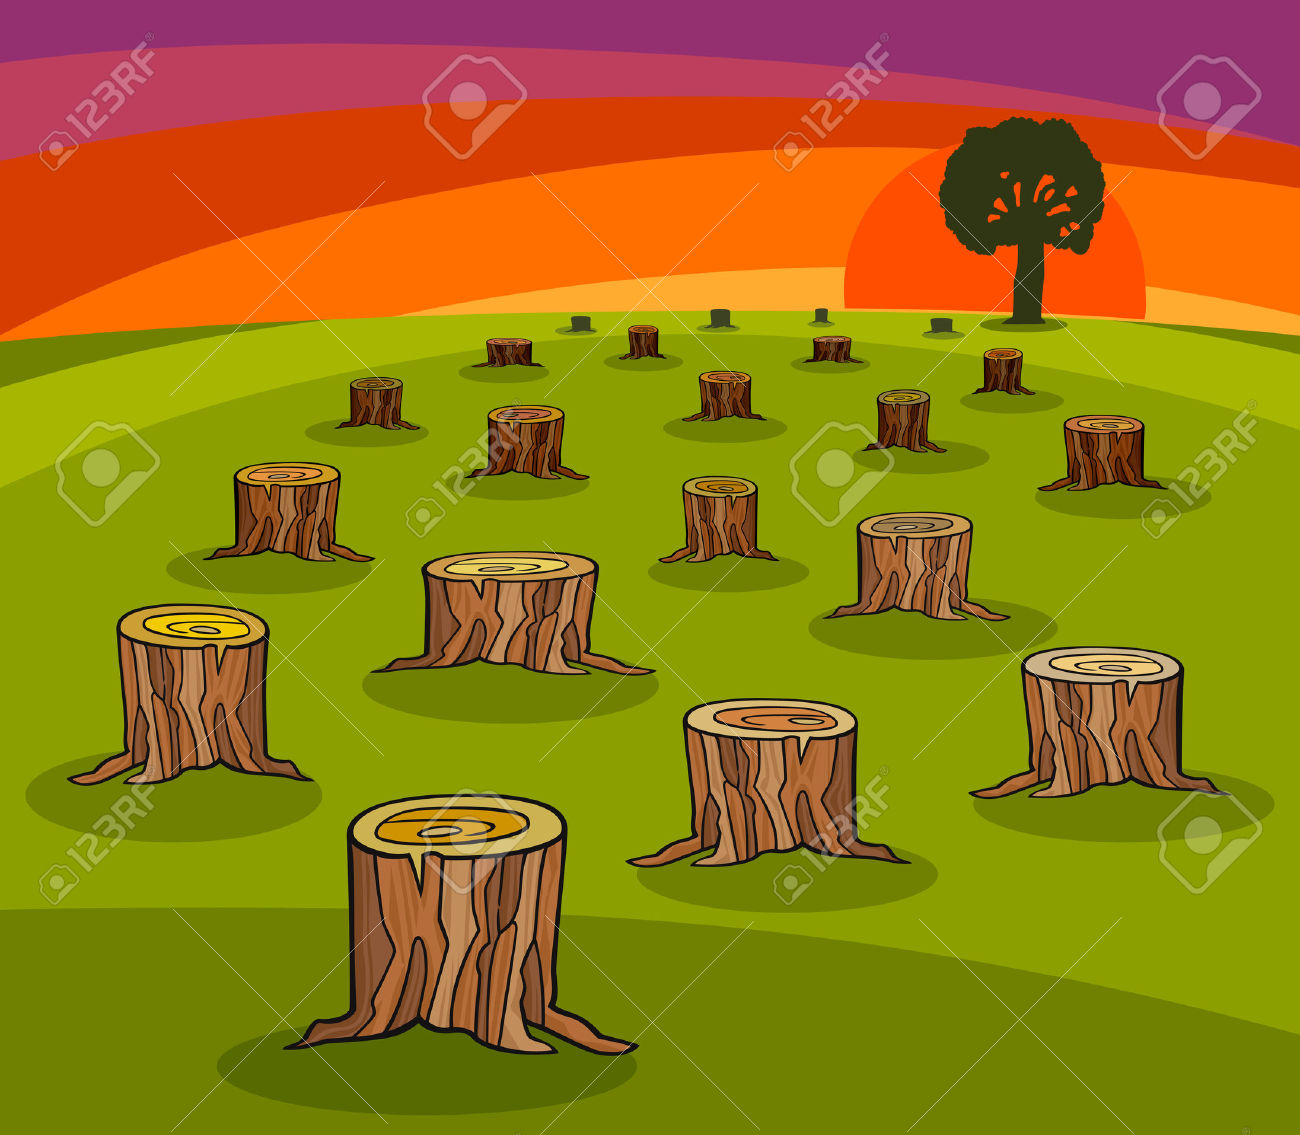 Tree damage clipart.